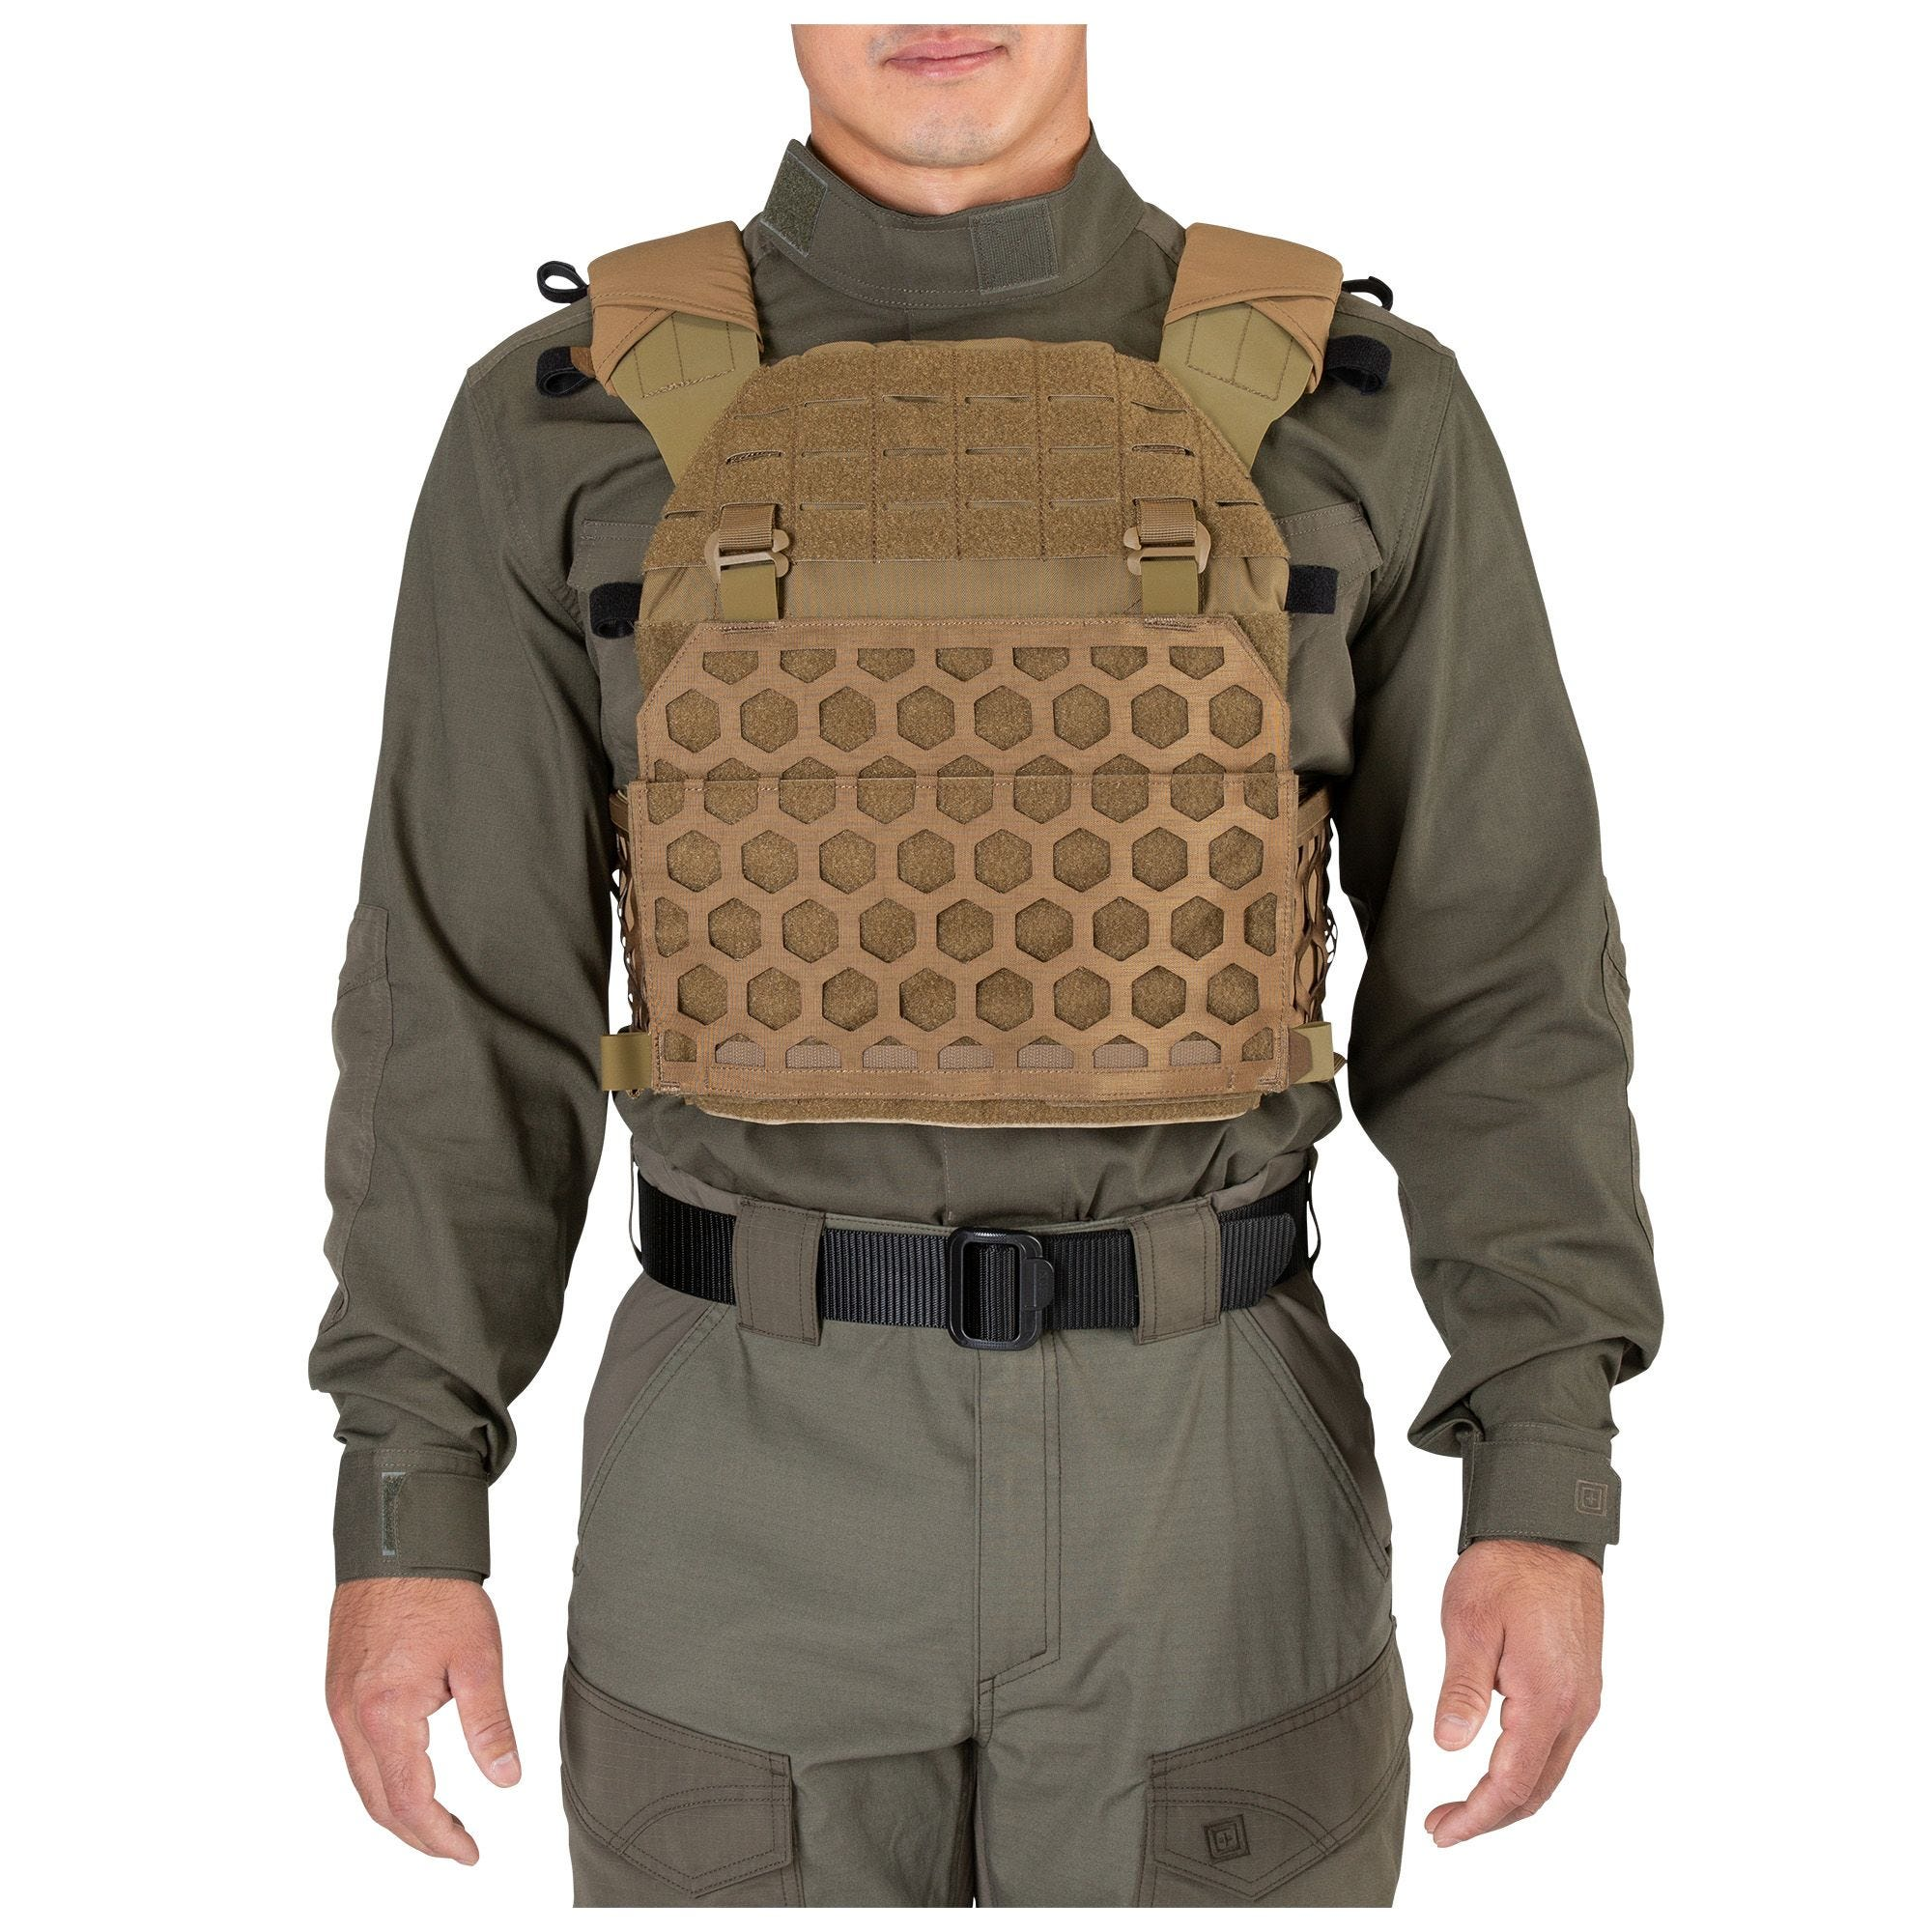 All Missions Plate Carrier